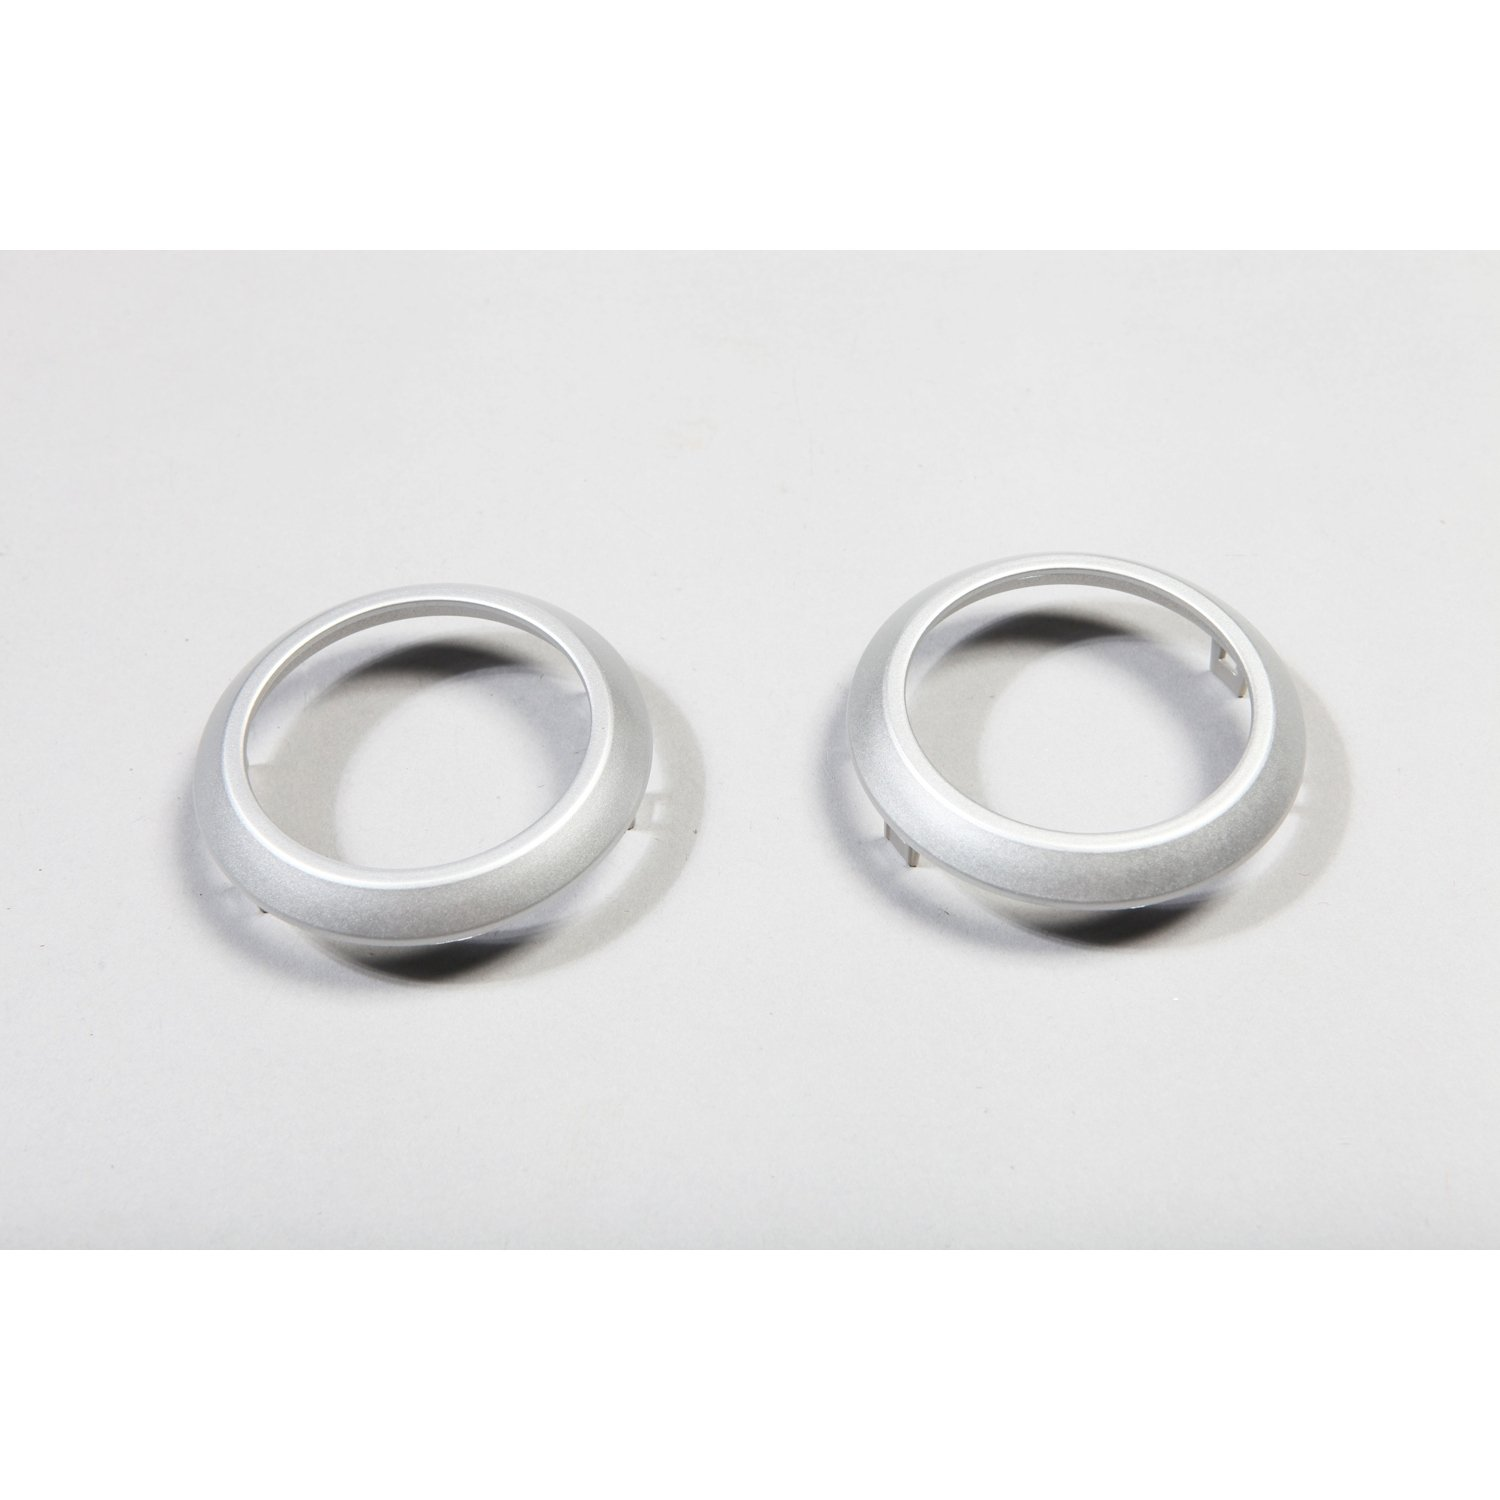 Rugged Ridge 11151.10 Brushed Silver AC Vent Trim Cover Pair